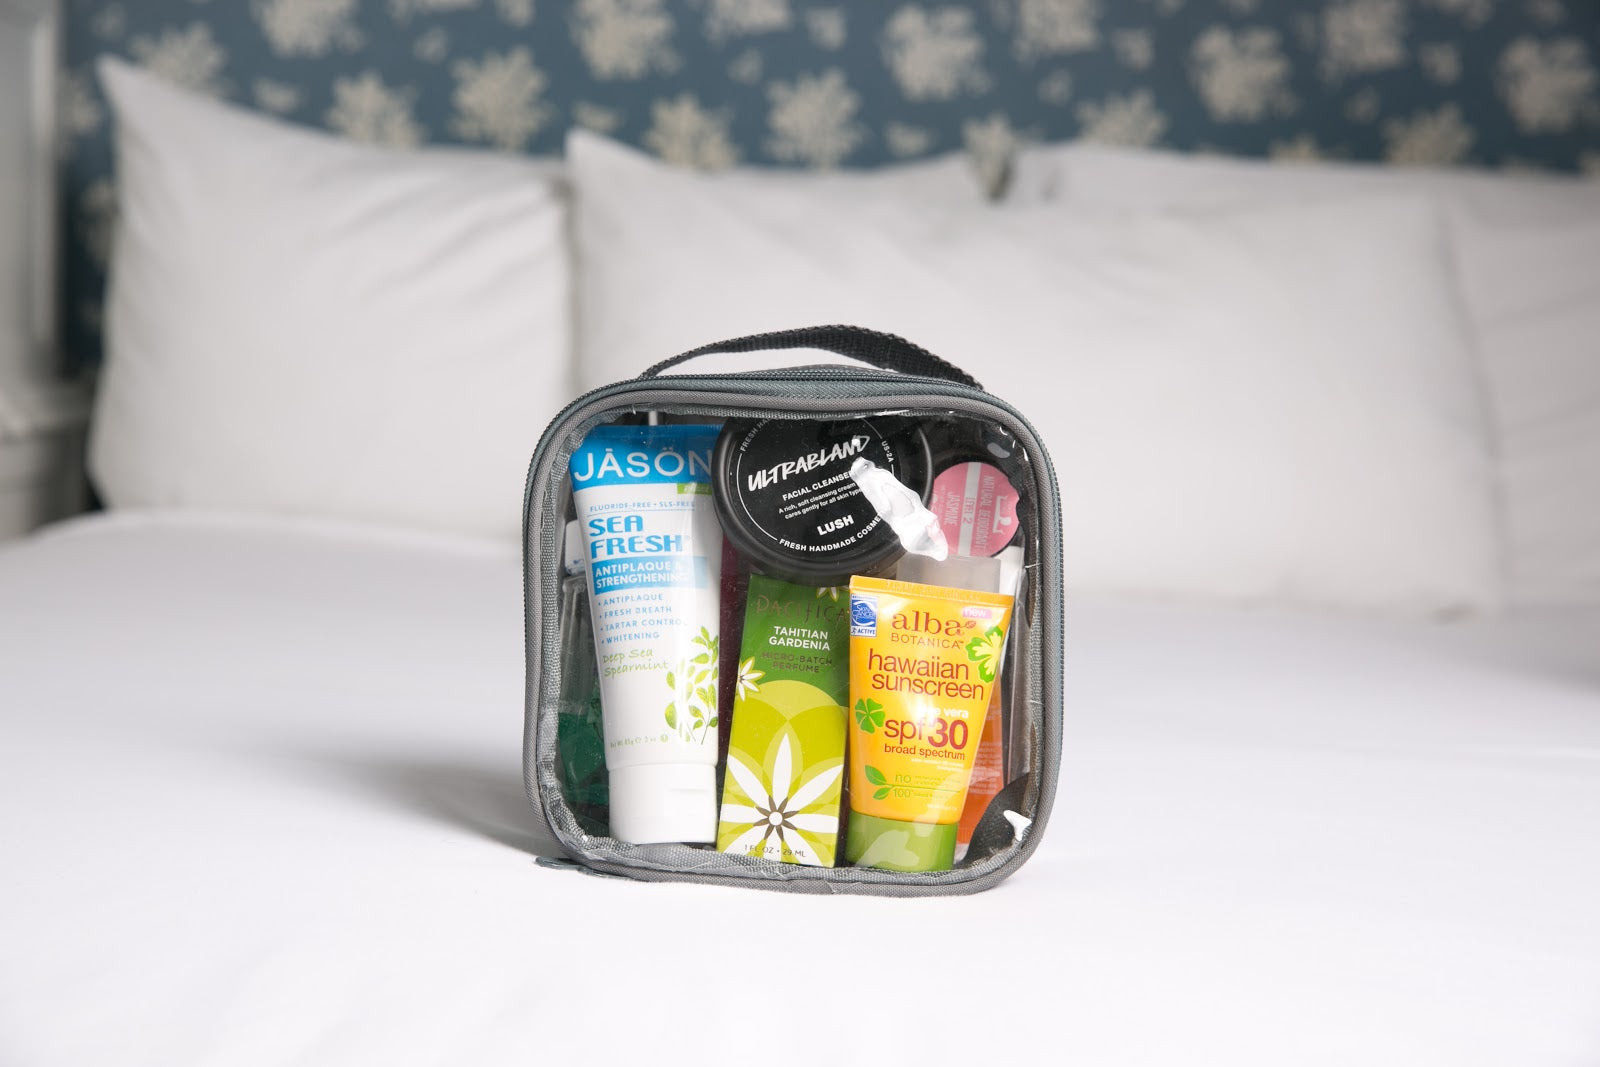 What products can I bring in TSA-approved toiletry bag